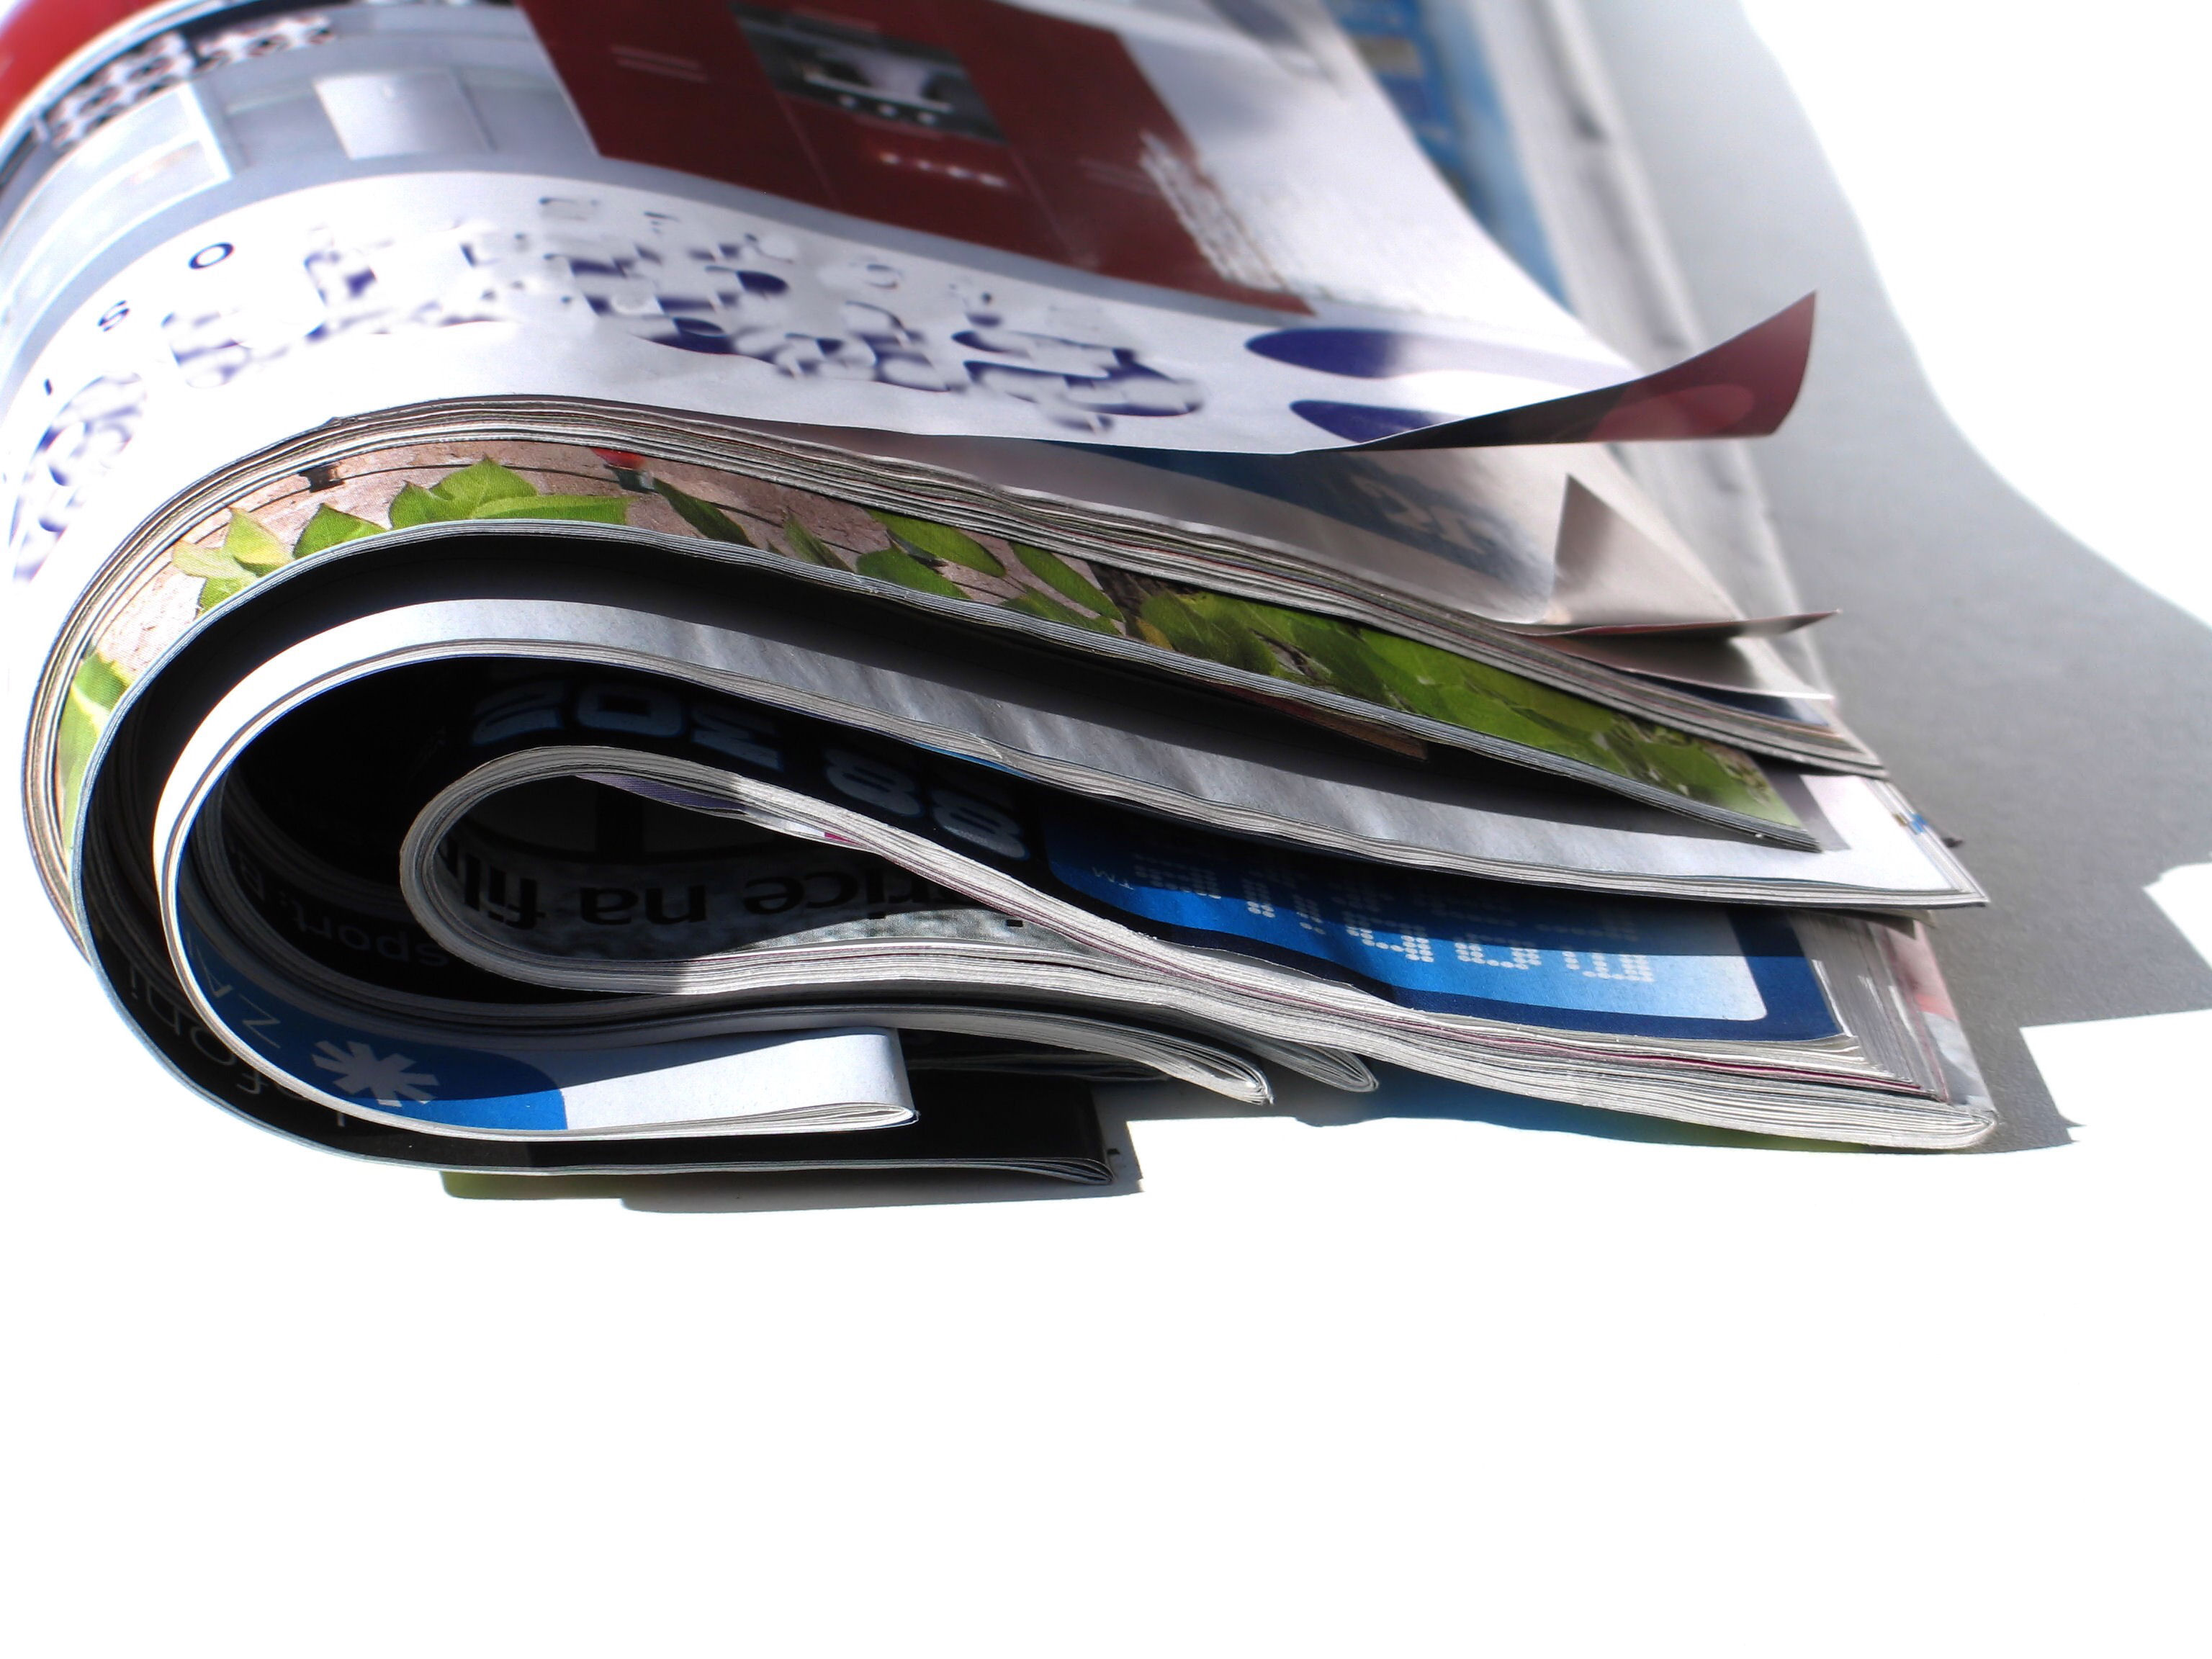 What newspapers have to learn from magazines, Mediafacts, MediaFacts